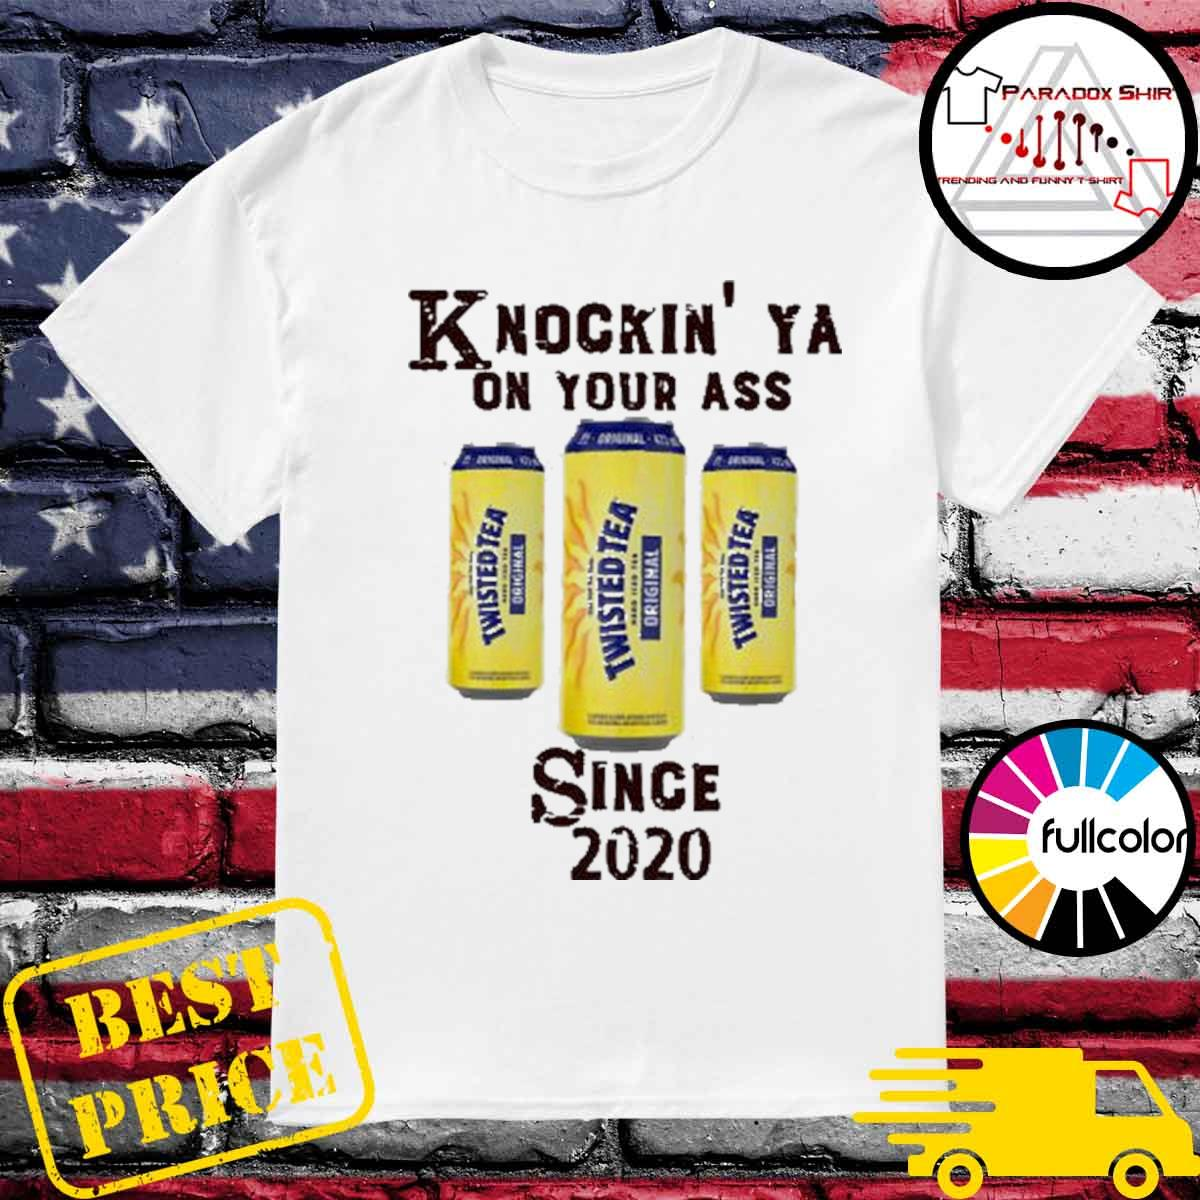 Knockin' Ya on your as Twisted Tea since 2020 Shirt